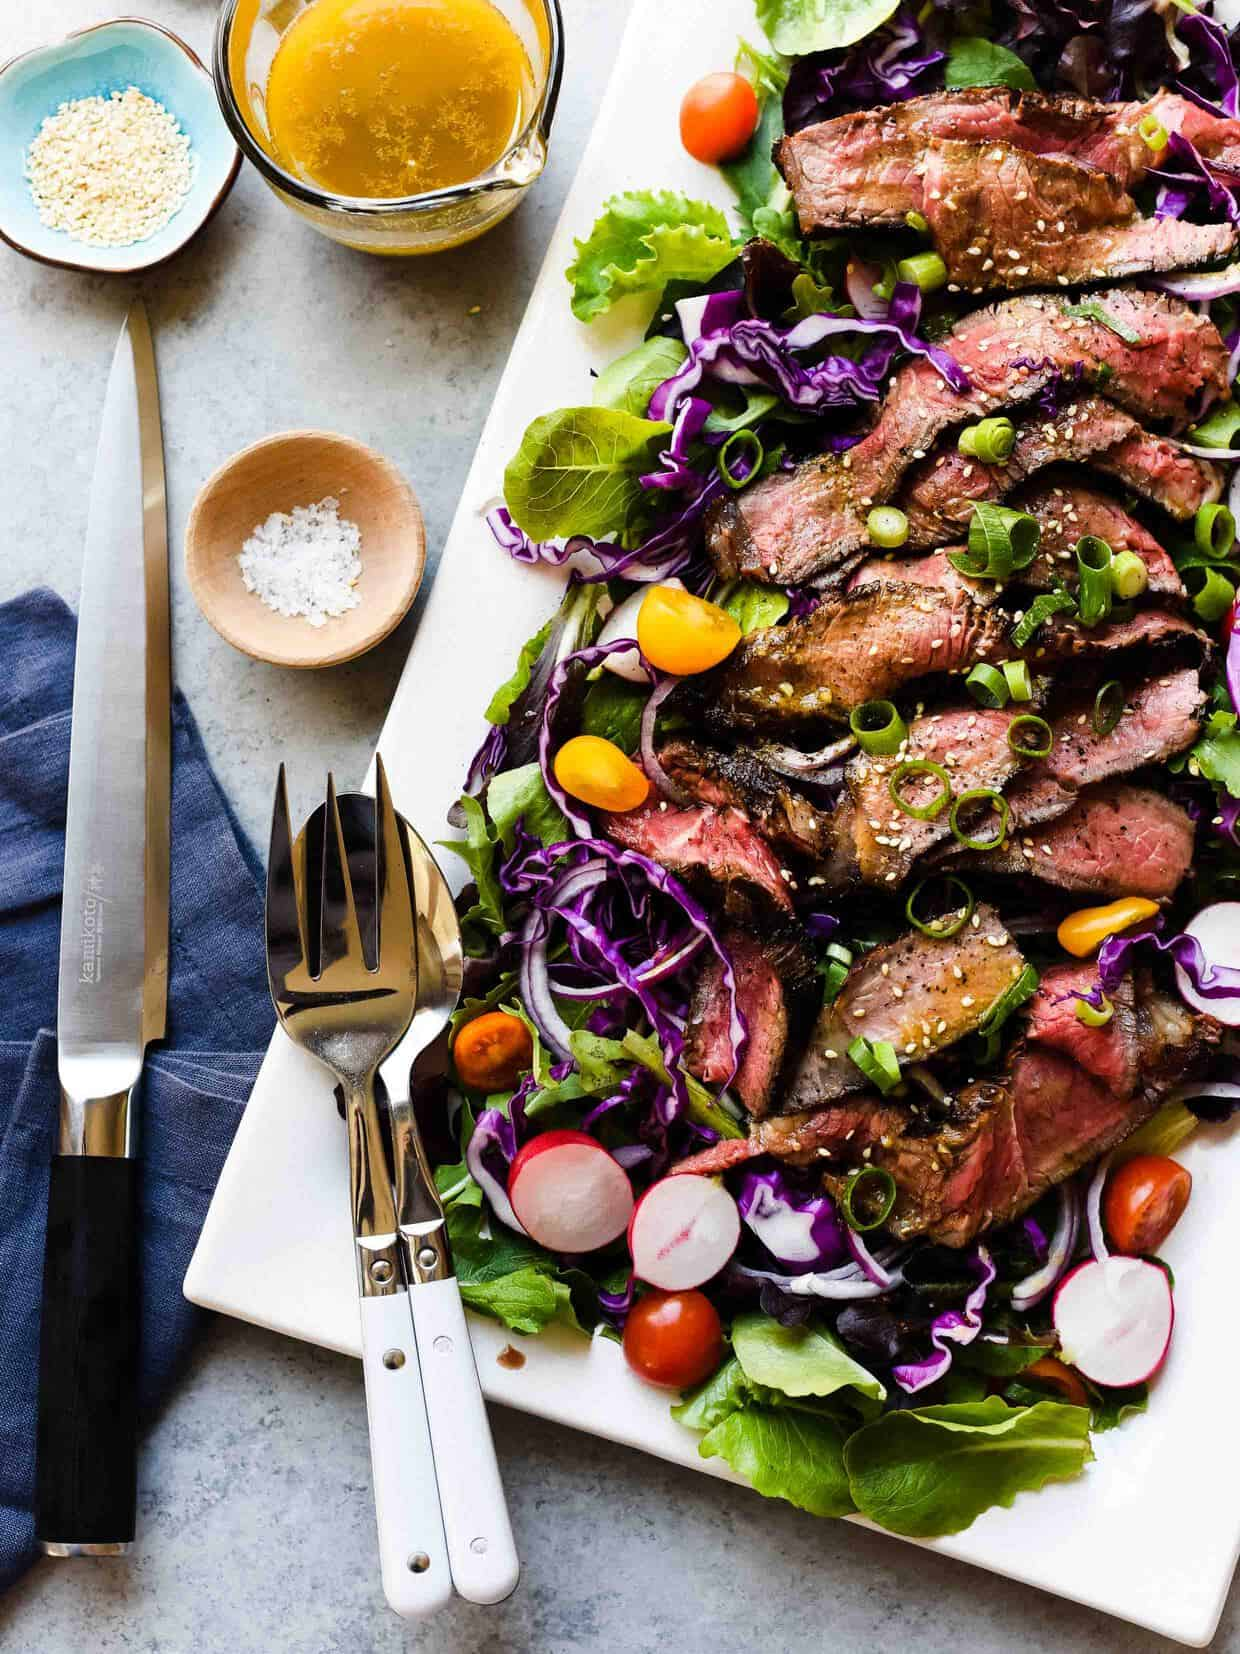 Miso-Marinated Steak Salad with Miso-Ginger Dressing